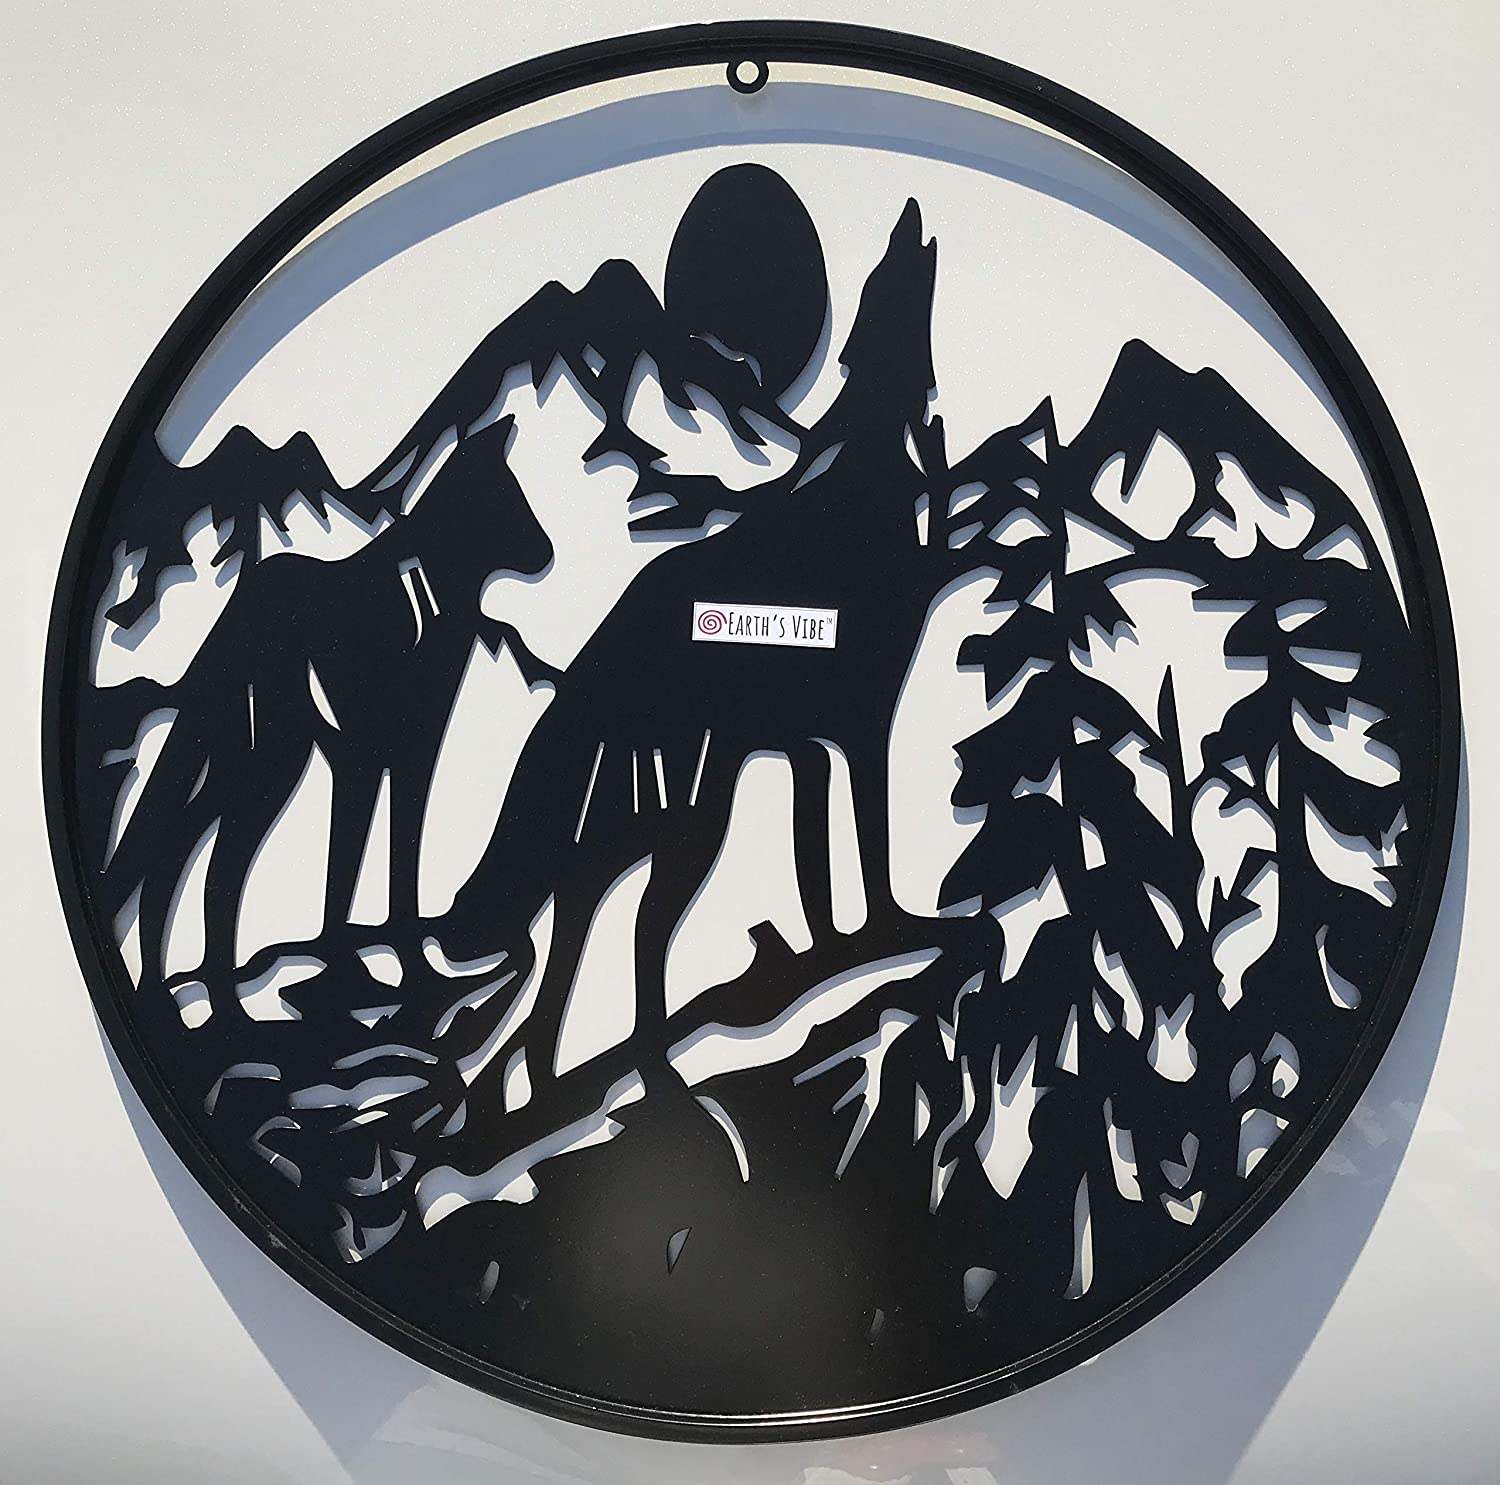 "Earth's Vibe | Wolf Howling at Moon | Metal Wall Art | Nature Inspired Decor | Large Hanging Modern Sculpture | Reconnect with your Roots | Decorative Heavy Duty Design | Indoor Outdoor Sign | 24"" Diameter"